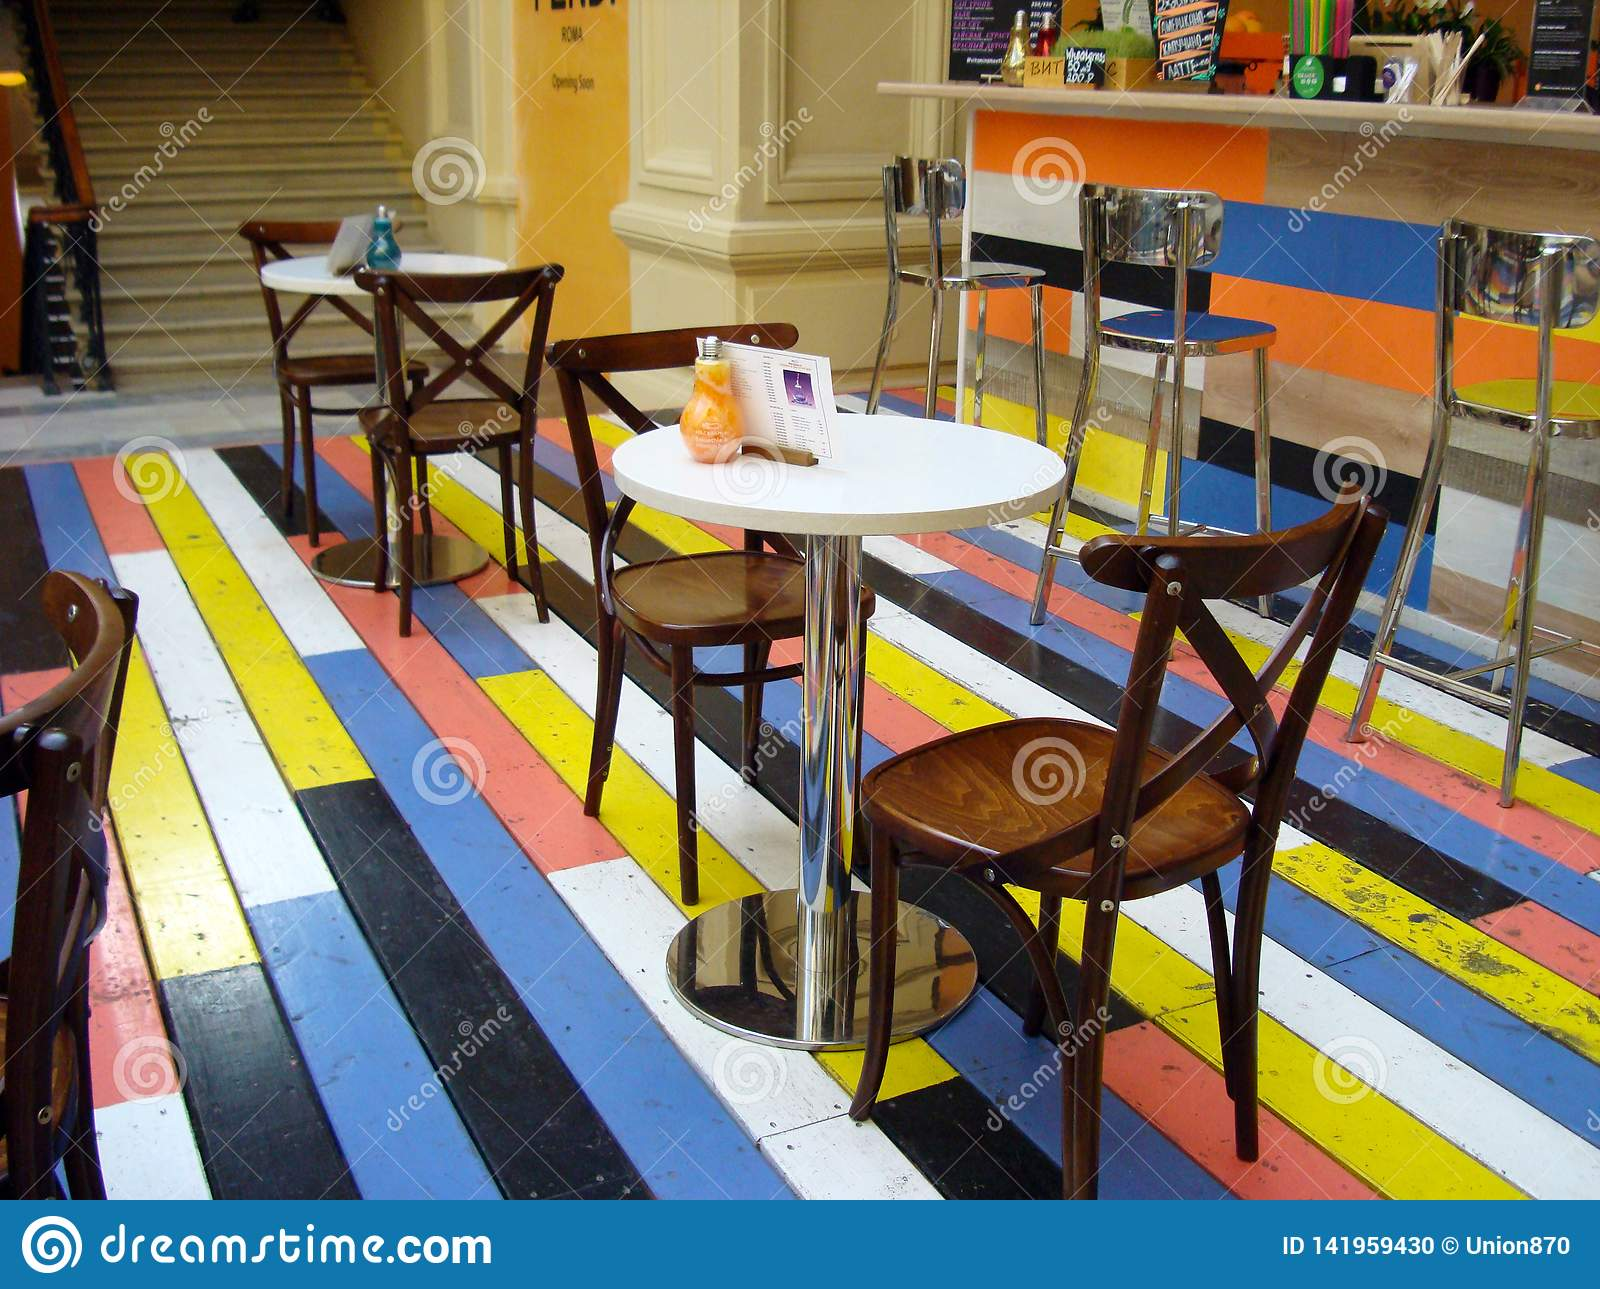 Cafe with colorful wooden floors in the shopping center